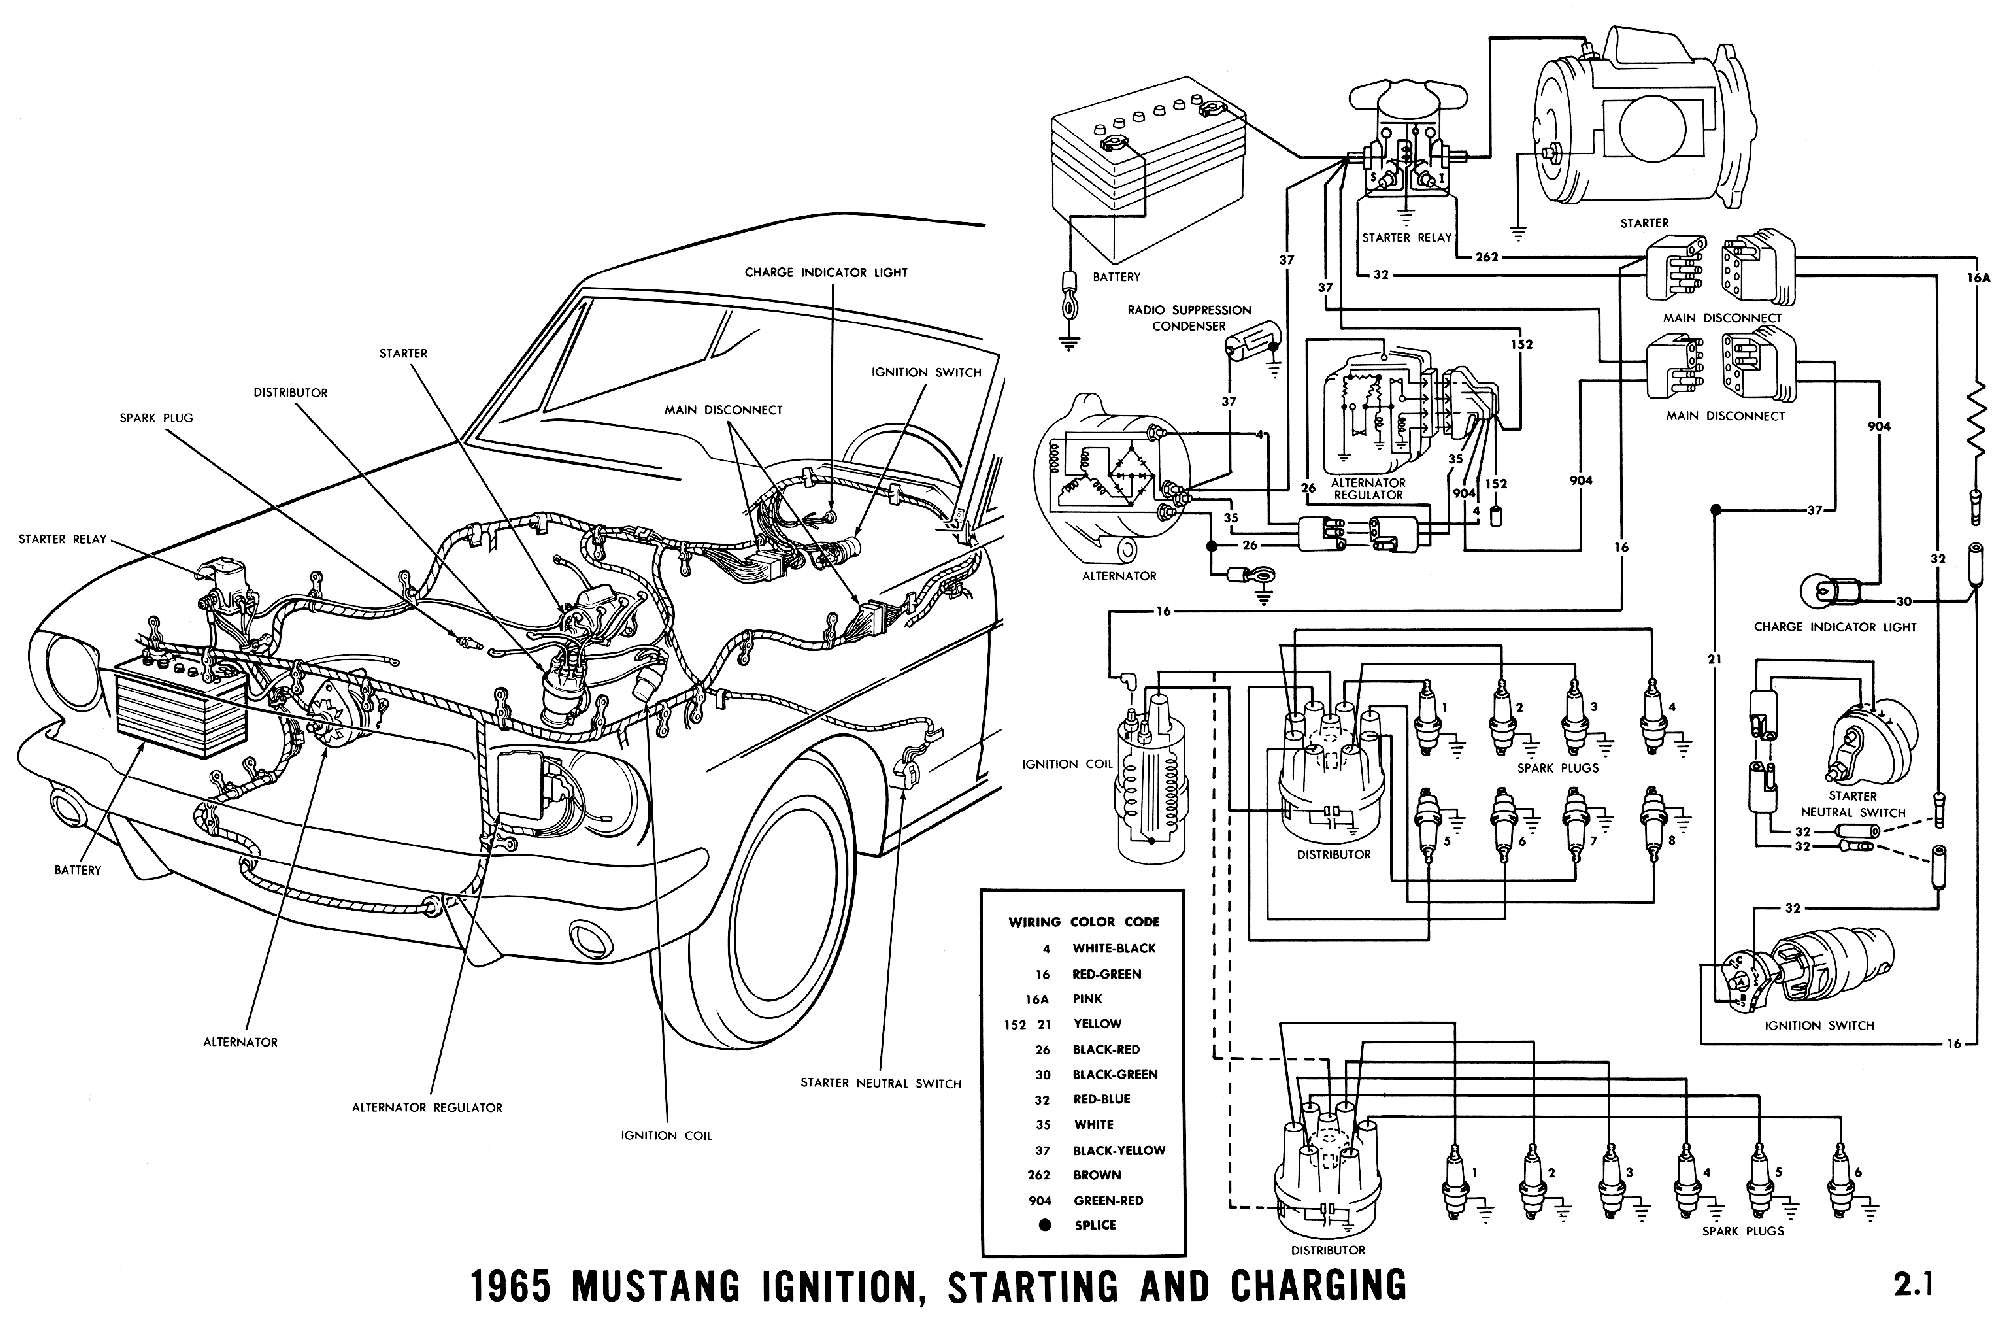 Electric Wiring Diagram Ford Mustang 2009, Electric, Free